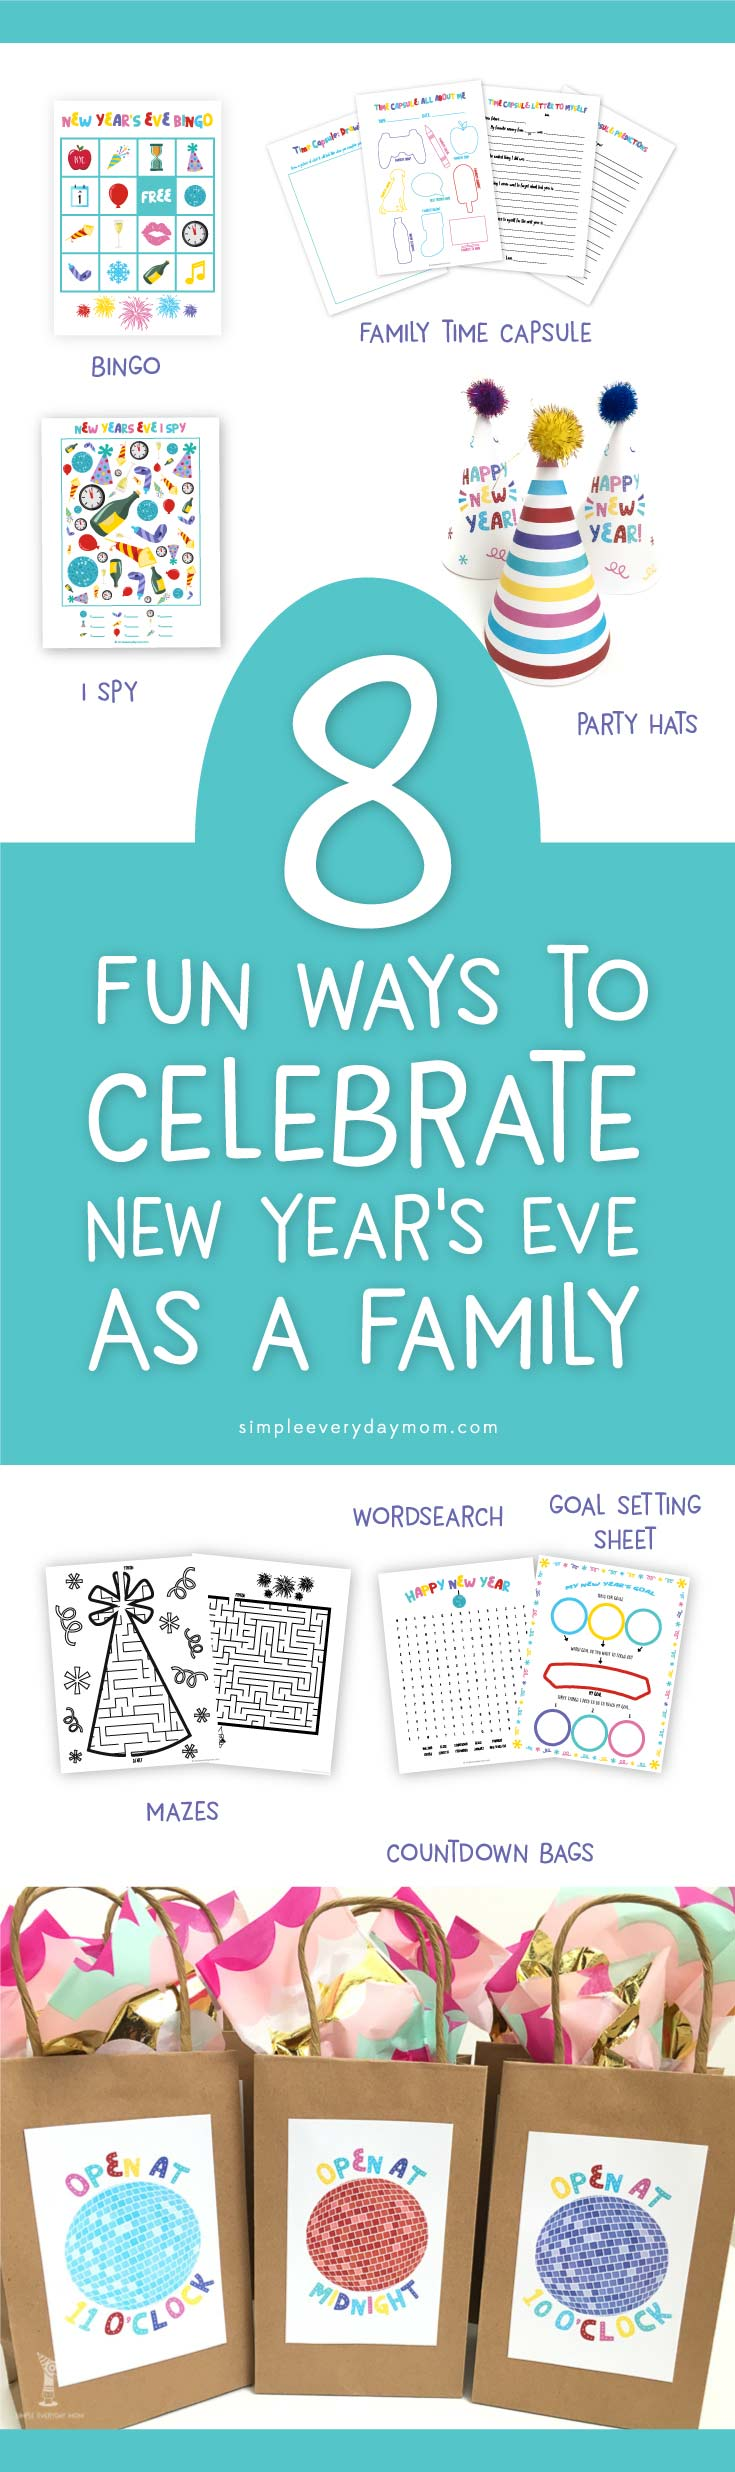 New Years Eve Ideas For Families | Have an awesome New Years Eve party with your kids with these NYE activities. There's bingo, ispy, a family time capsule, mazes, a goal setting sheet, countdown bag labels and party hats! #NewYear  #kidsactivities